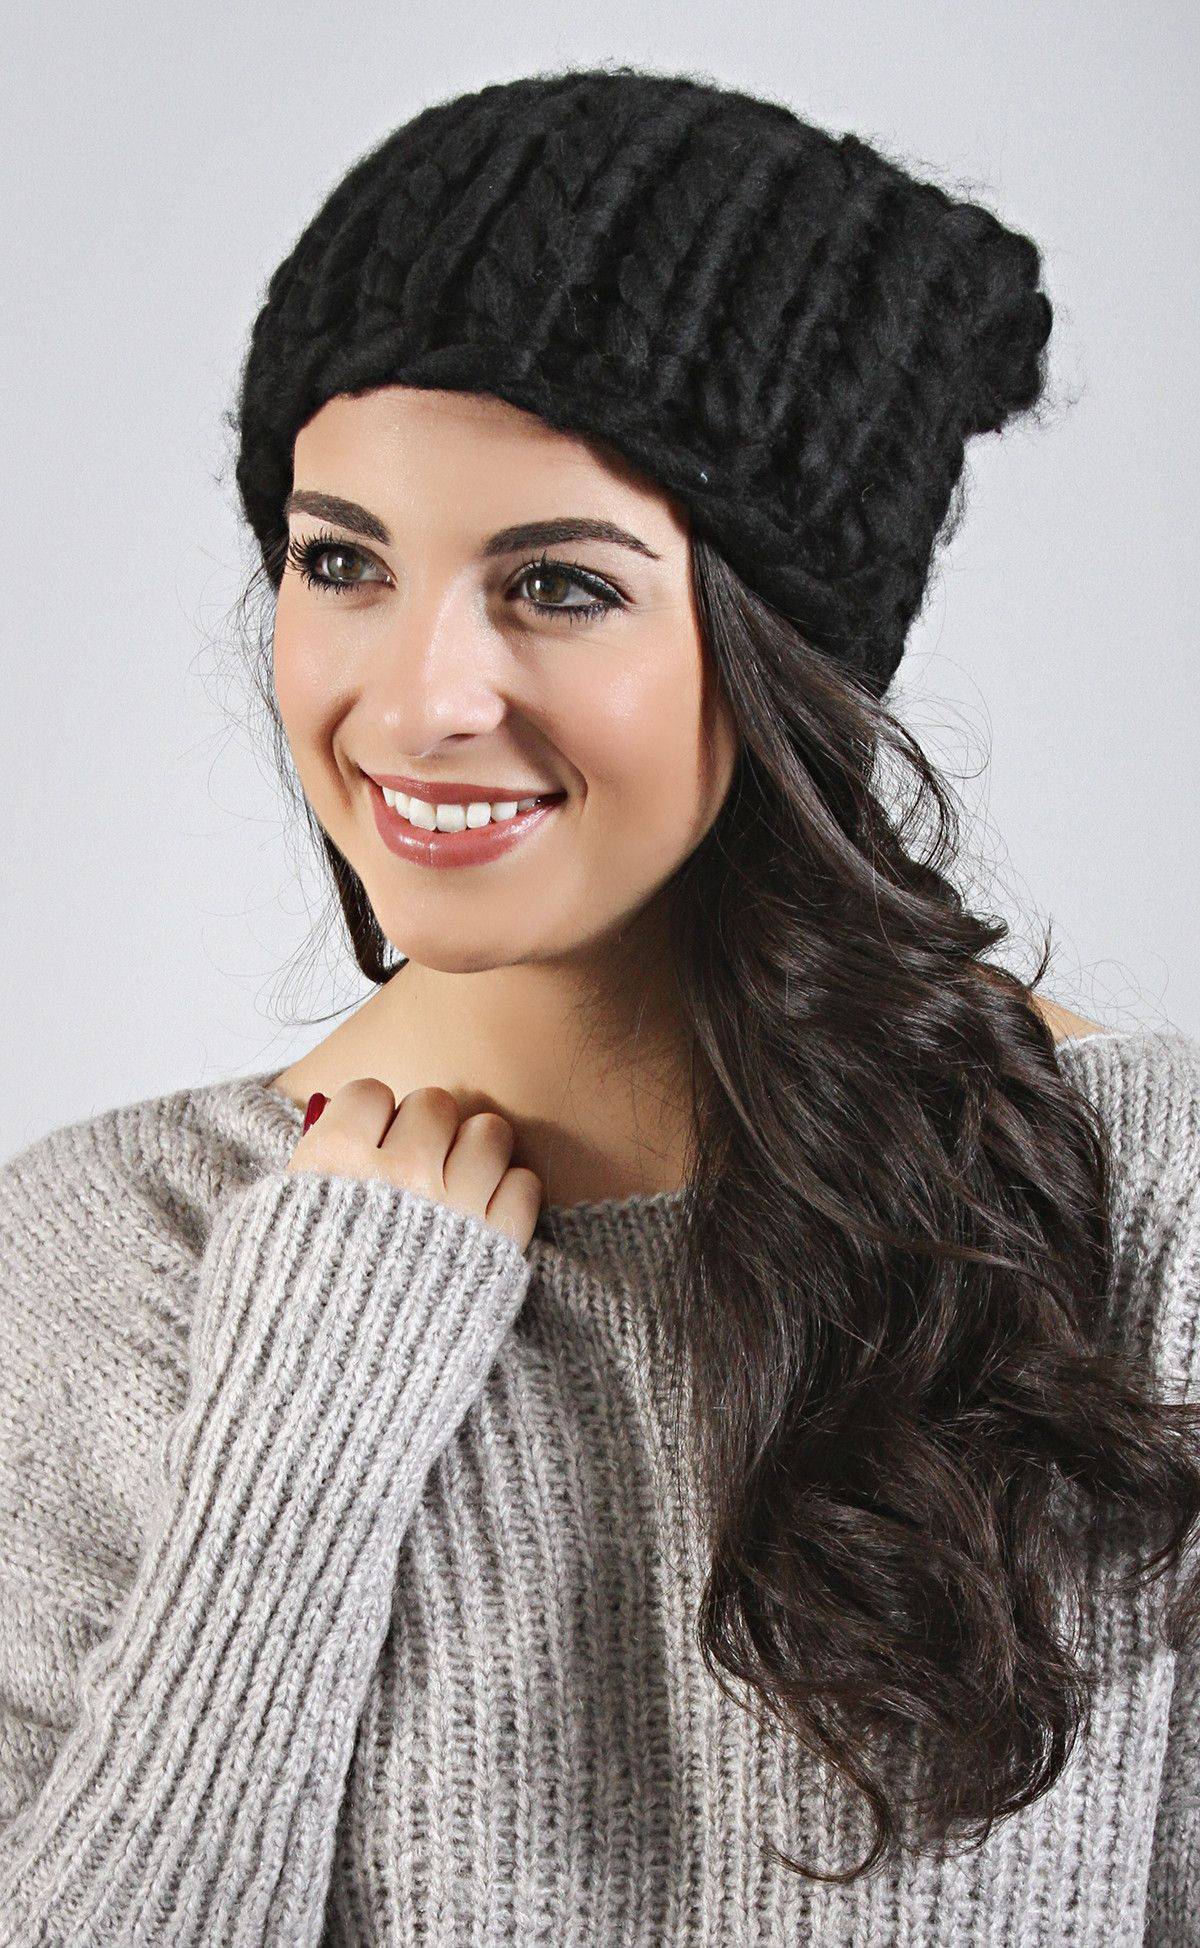 soft and chic knit beanie - black--Get 15% off + Free Shipping w/code 'RiffraffRepLauren' at checkout on ShopRiffraff.com!